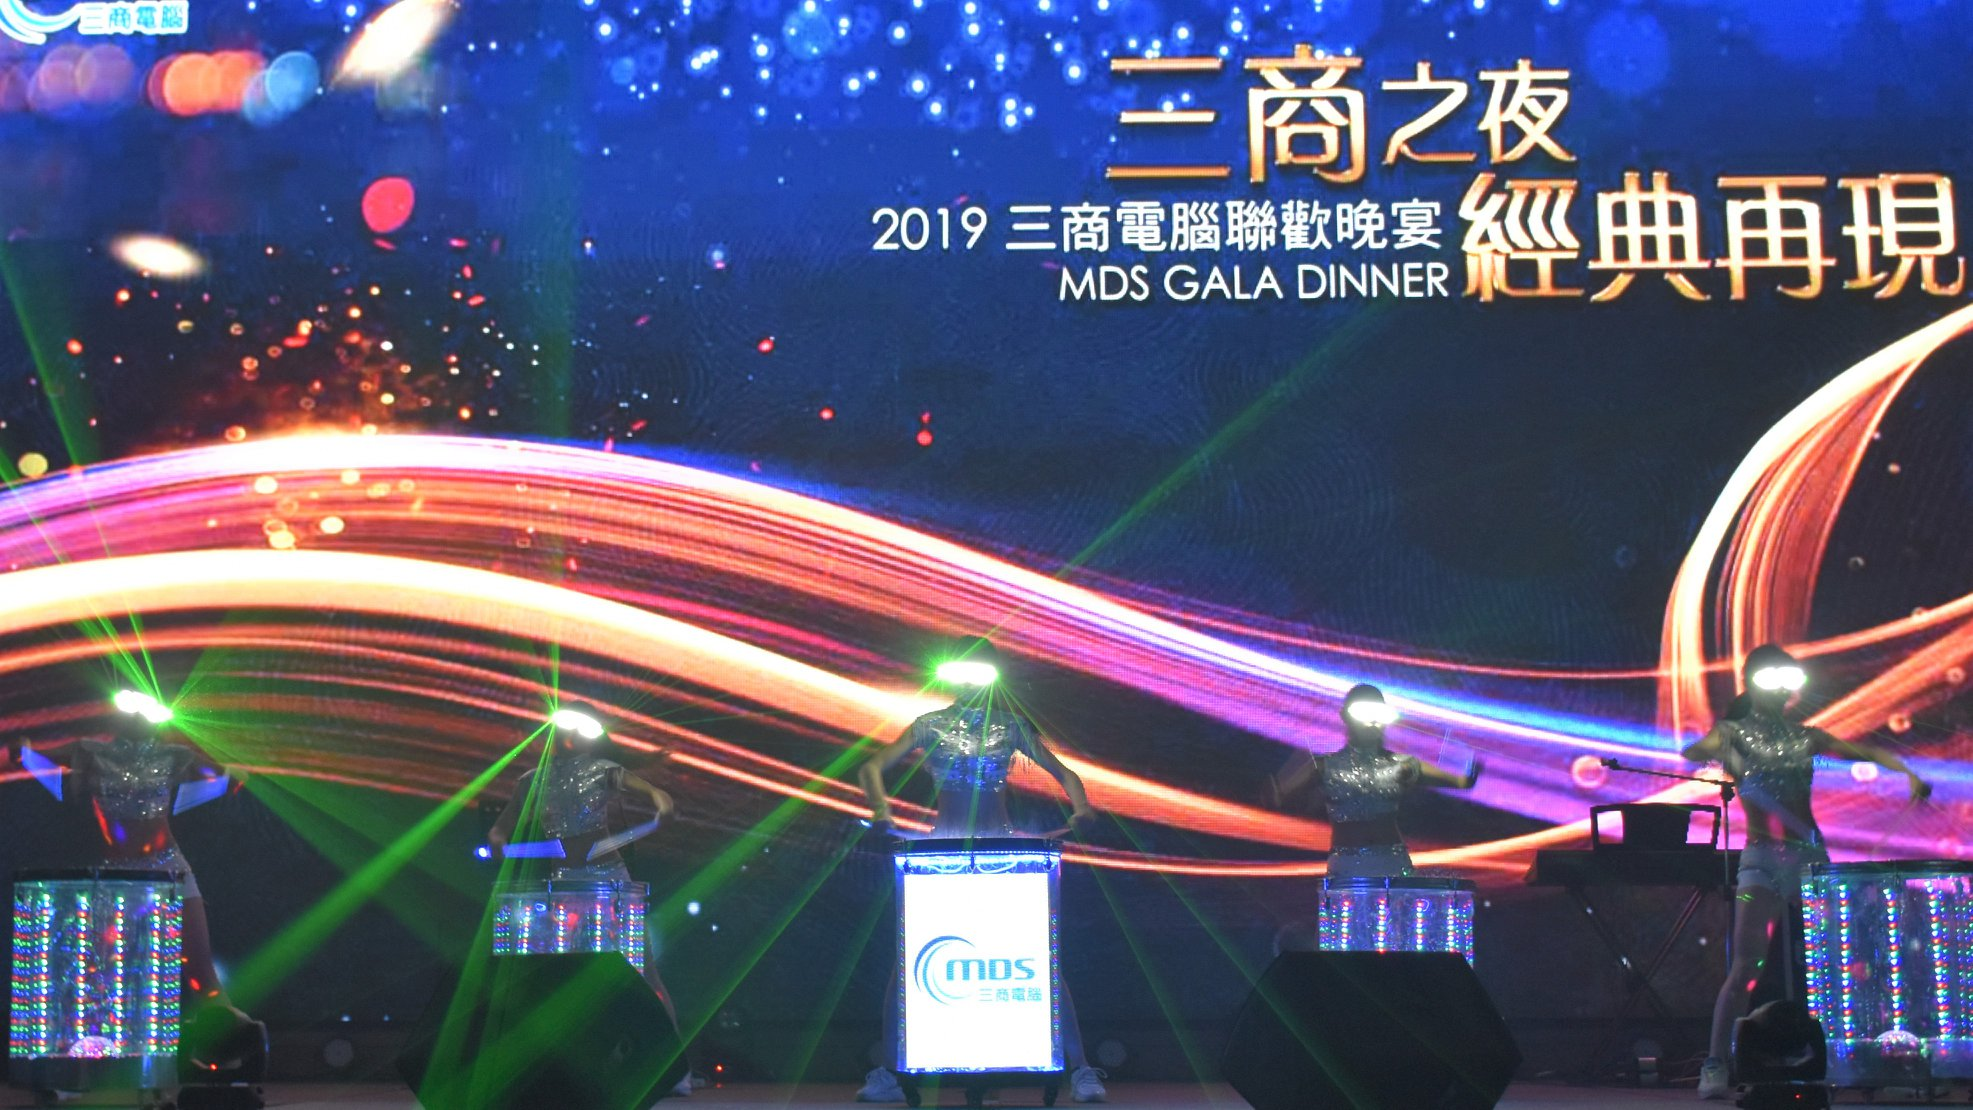 LED logo laser water drums: LED logo 雷射水鼓